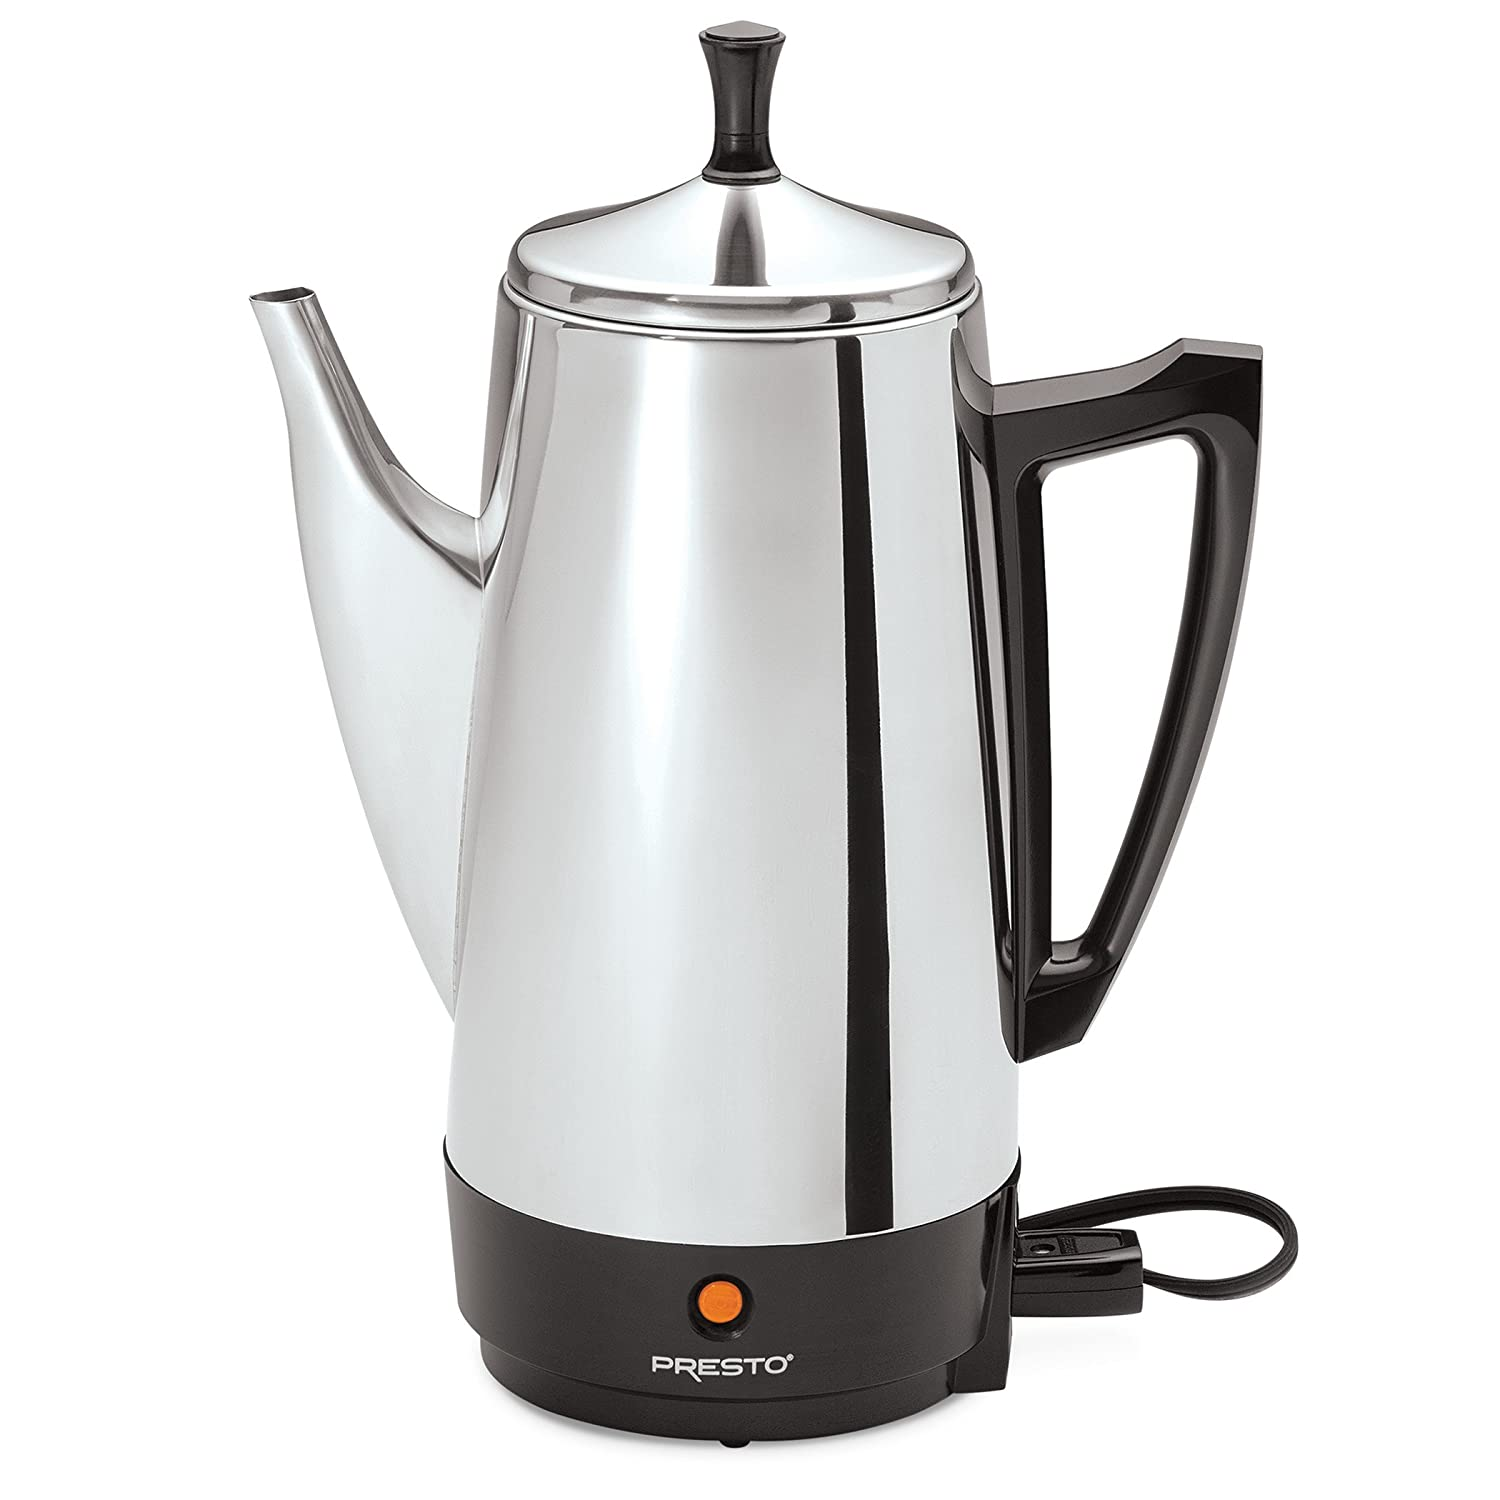 Presto 02811 12- Cup Stainless Steel Coffee Maker